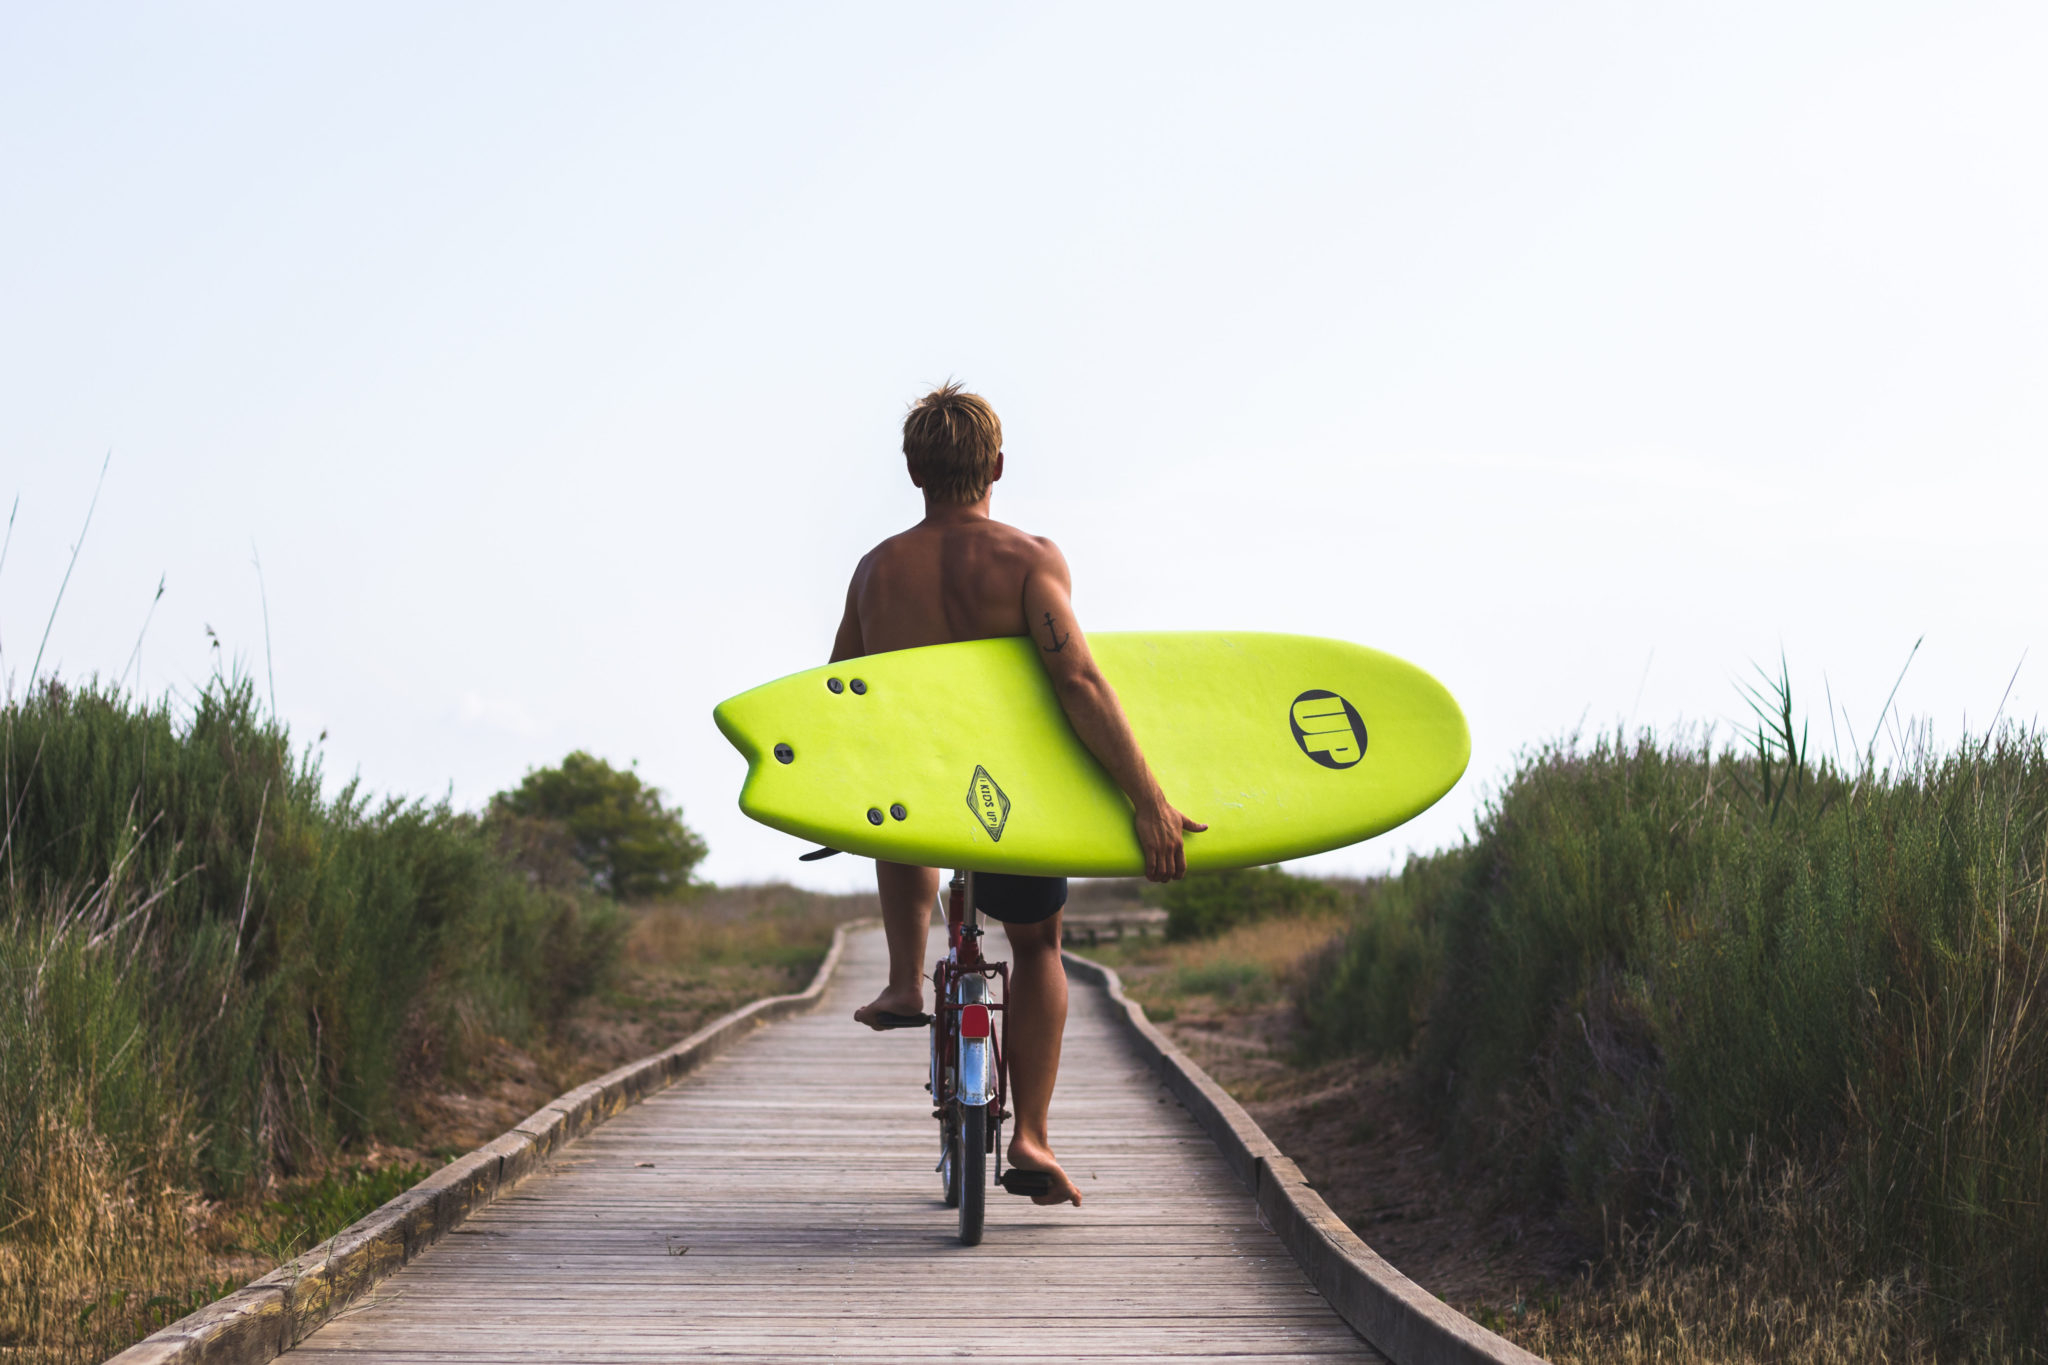 UP Surfboards. Tablas de Surf.